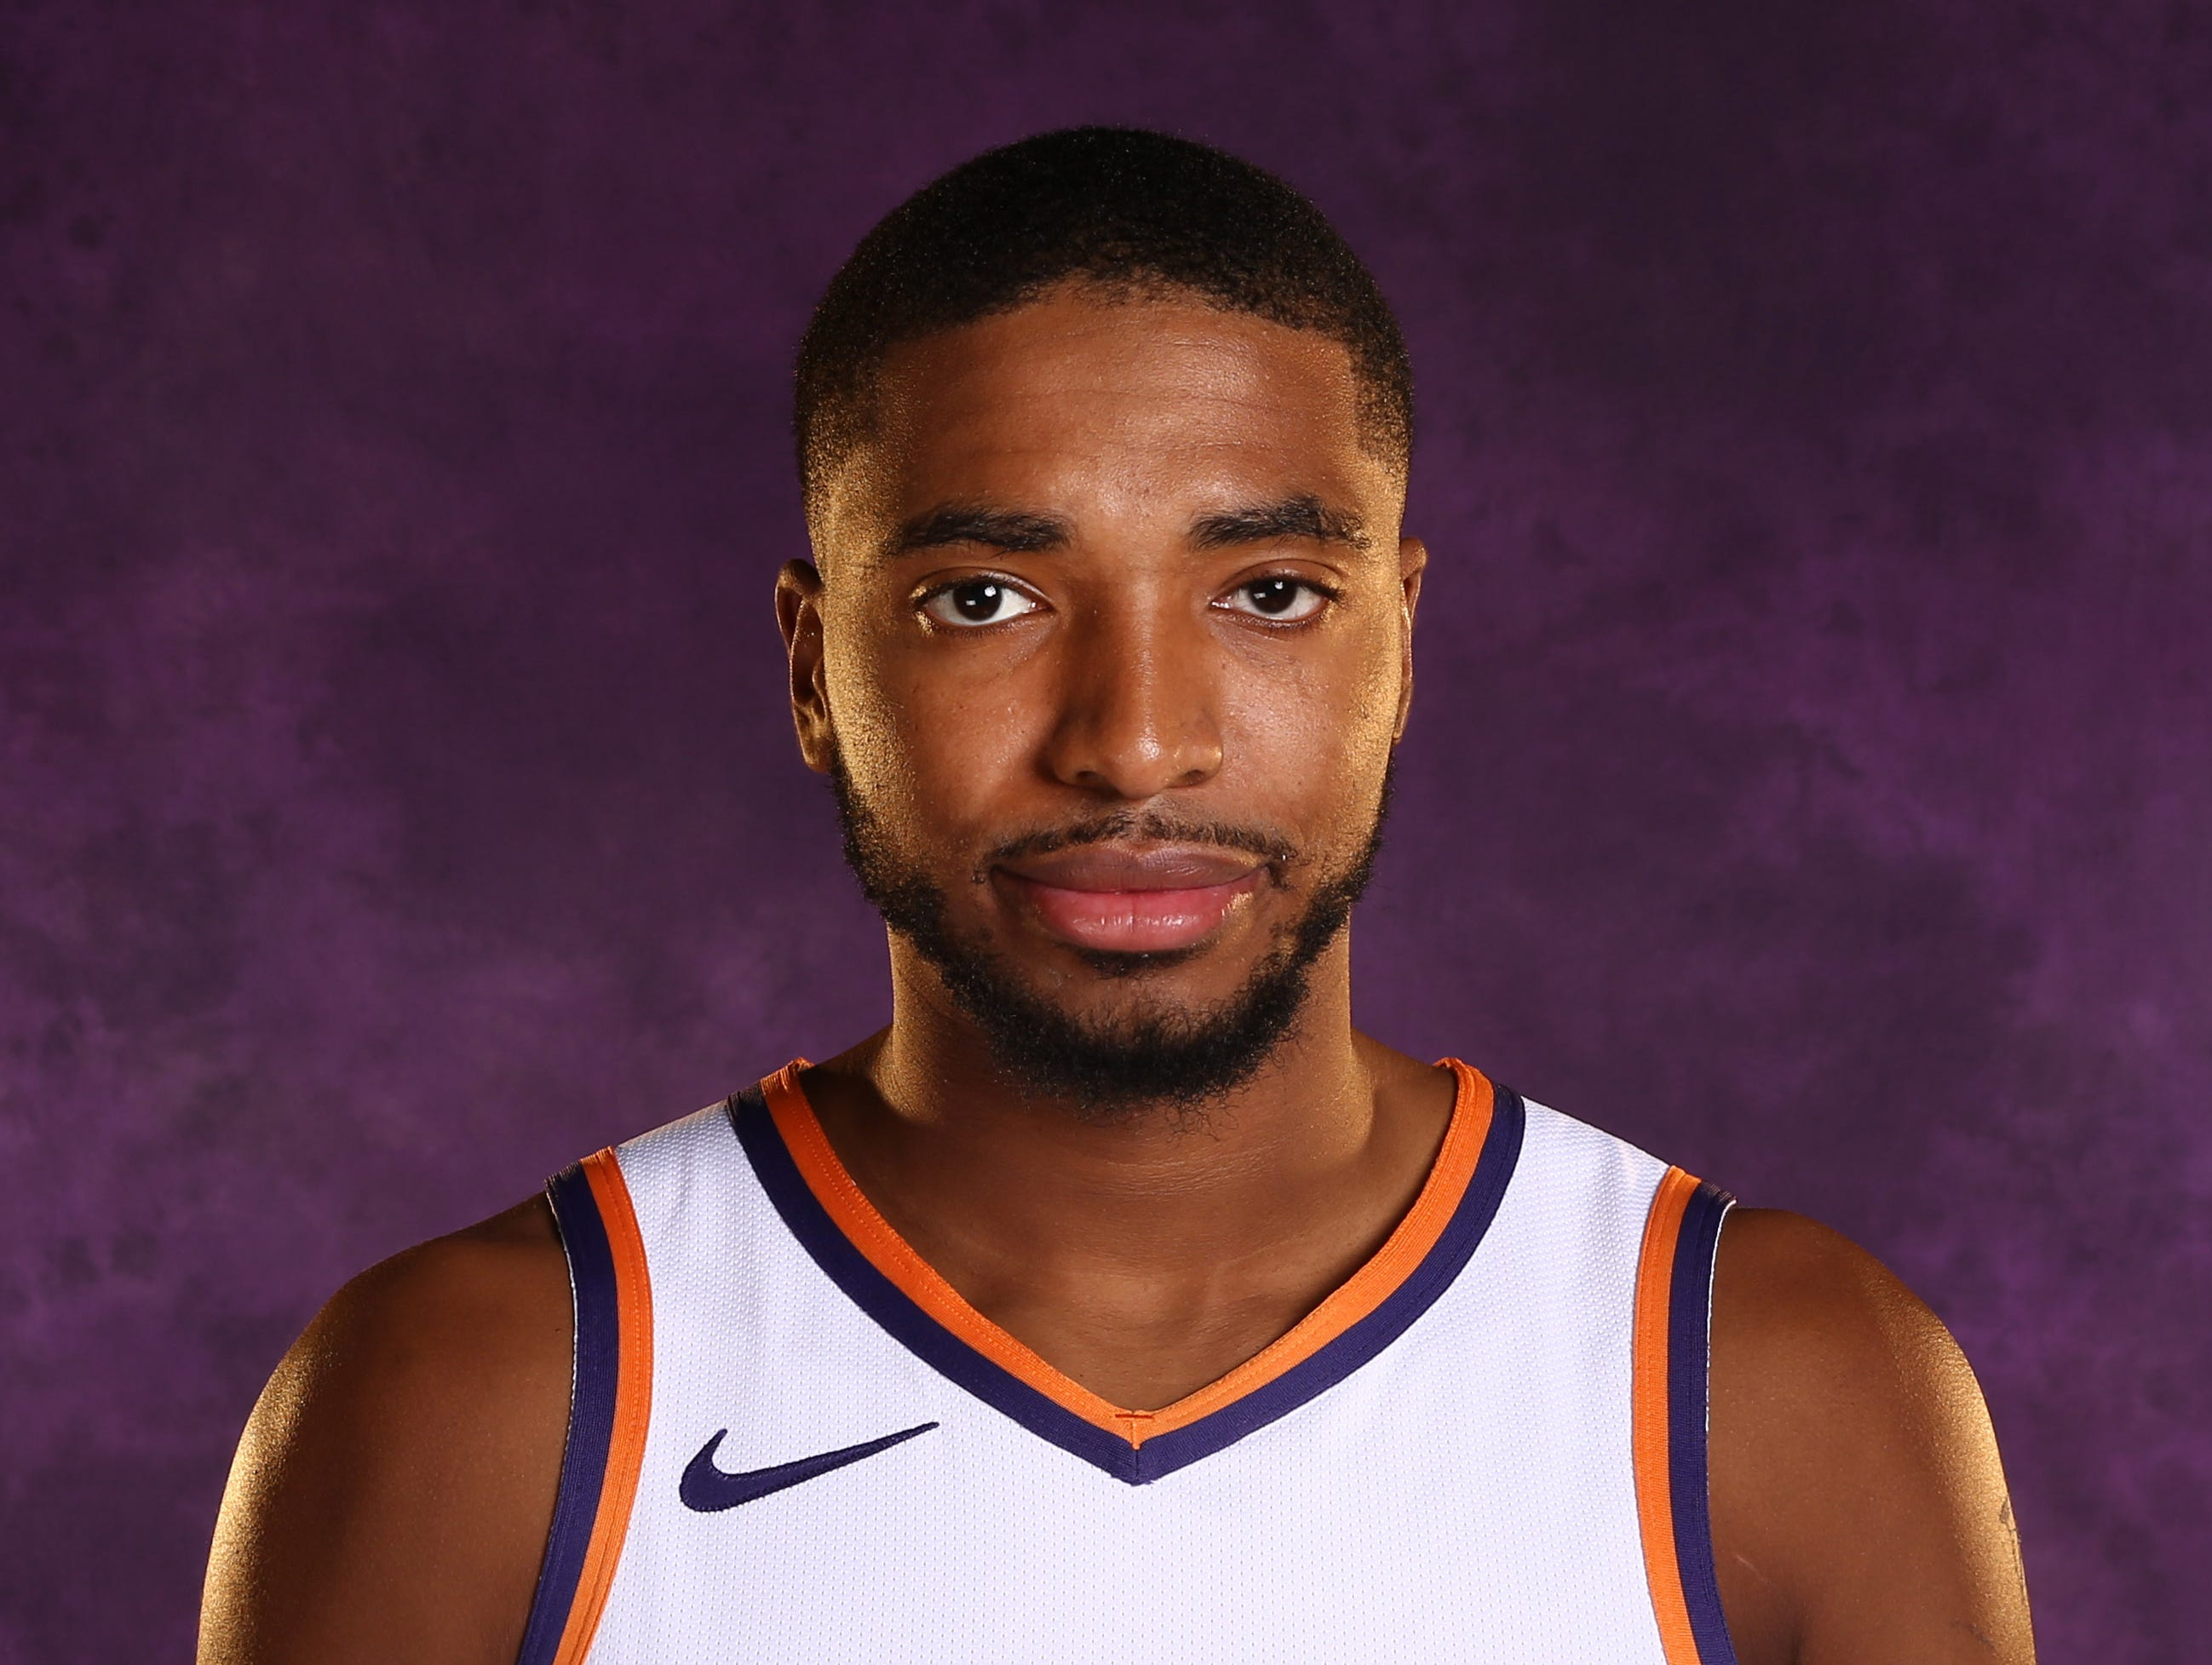 Mikal Bridges || Position: Forward || Height/Weight: 6-7, 210